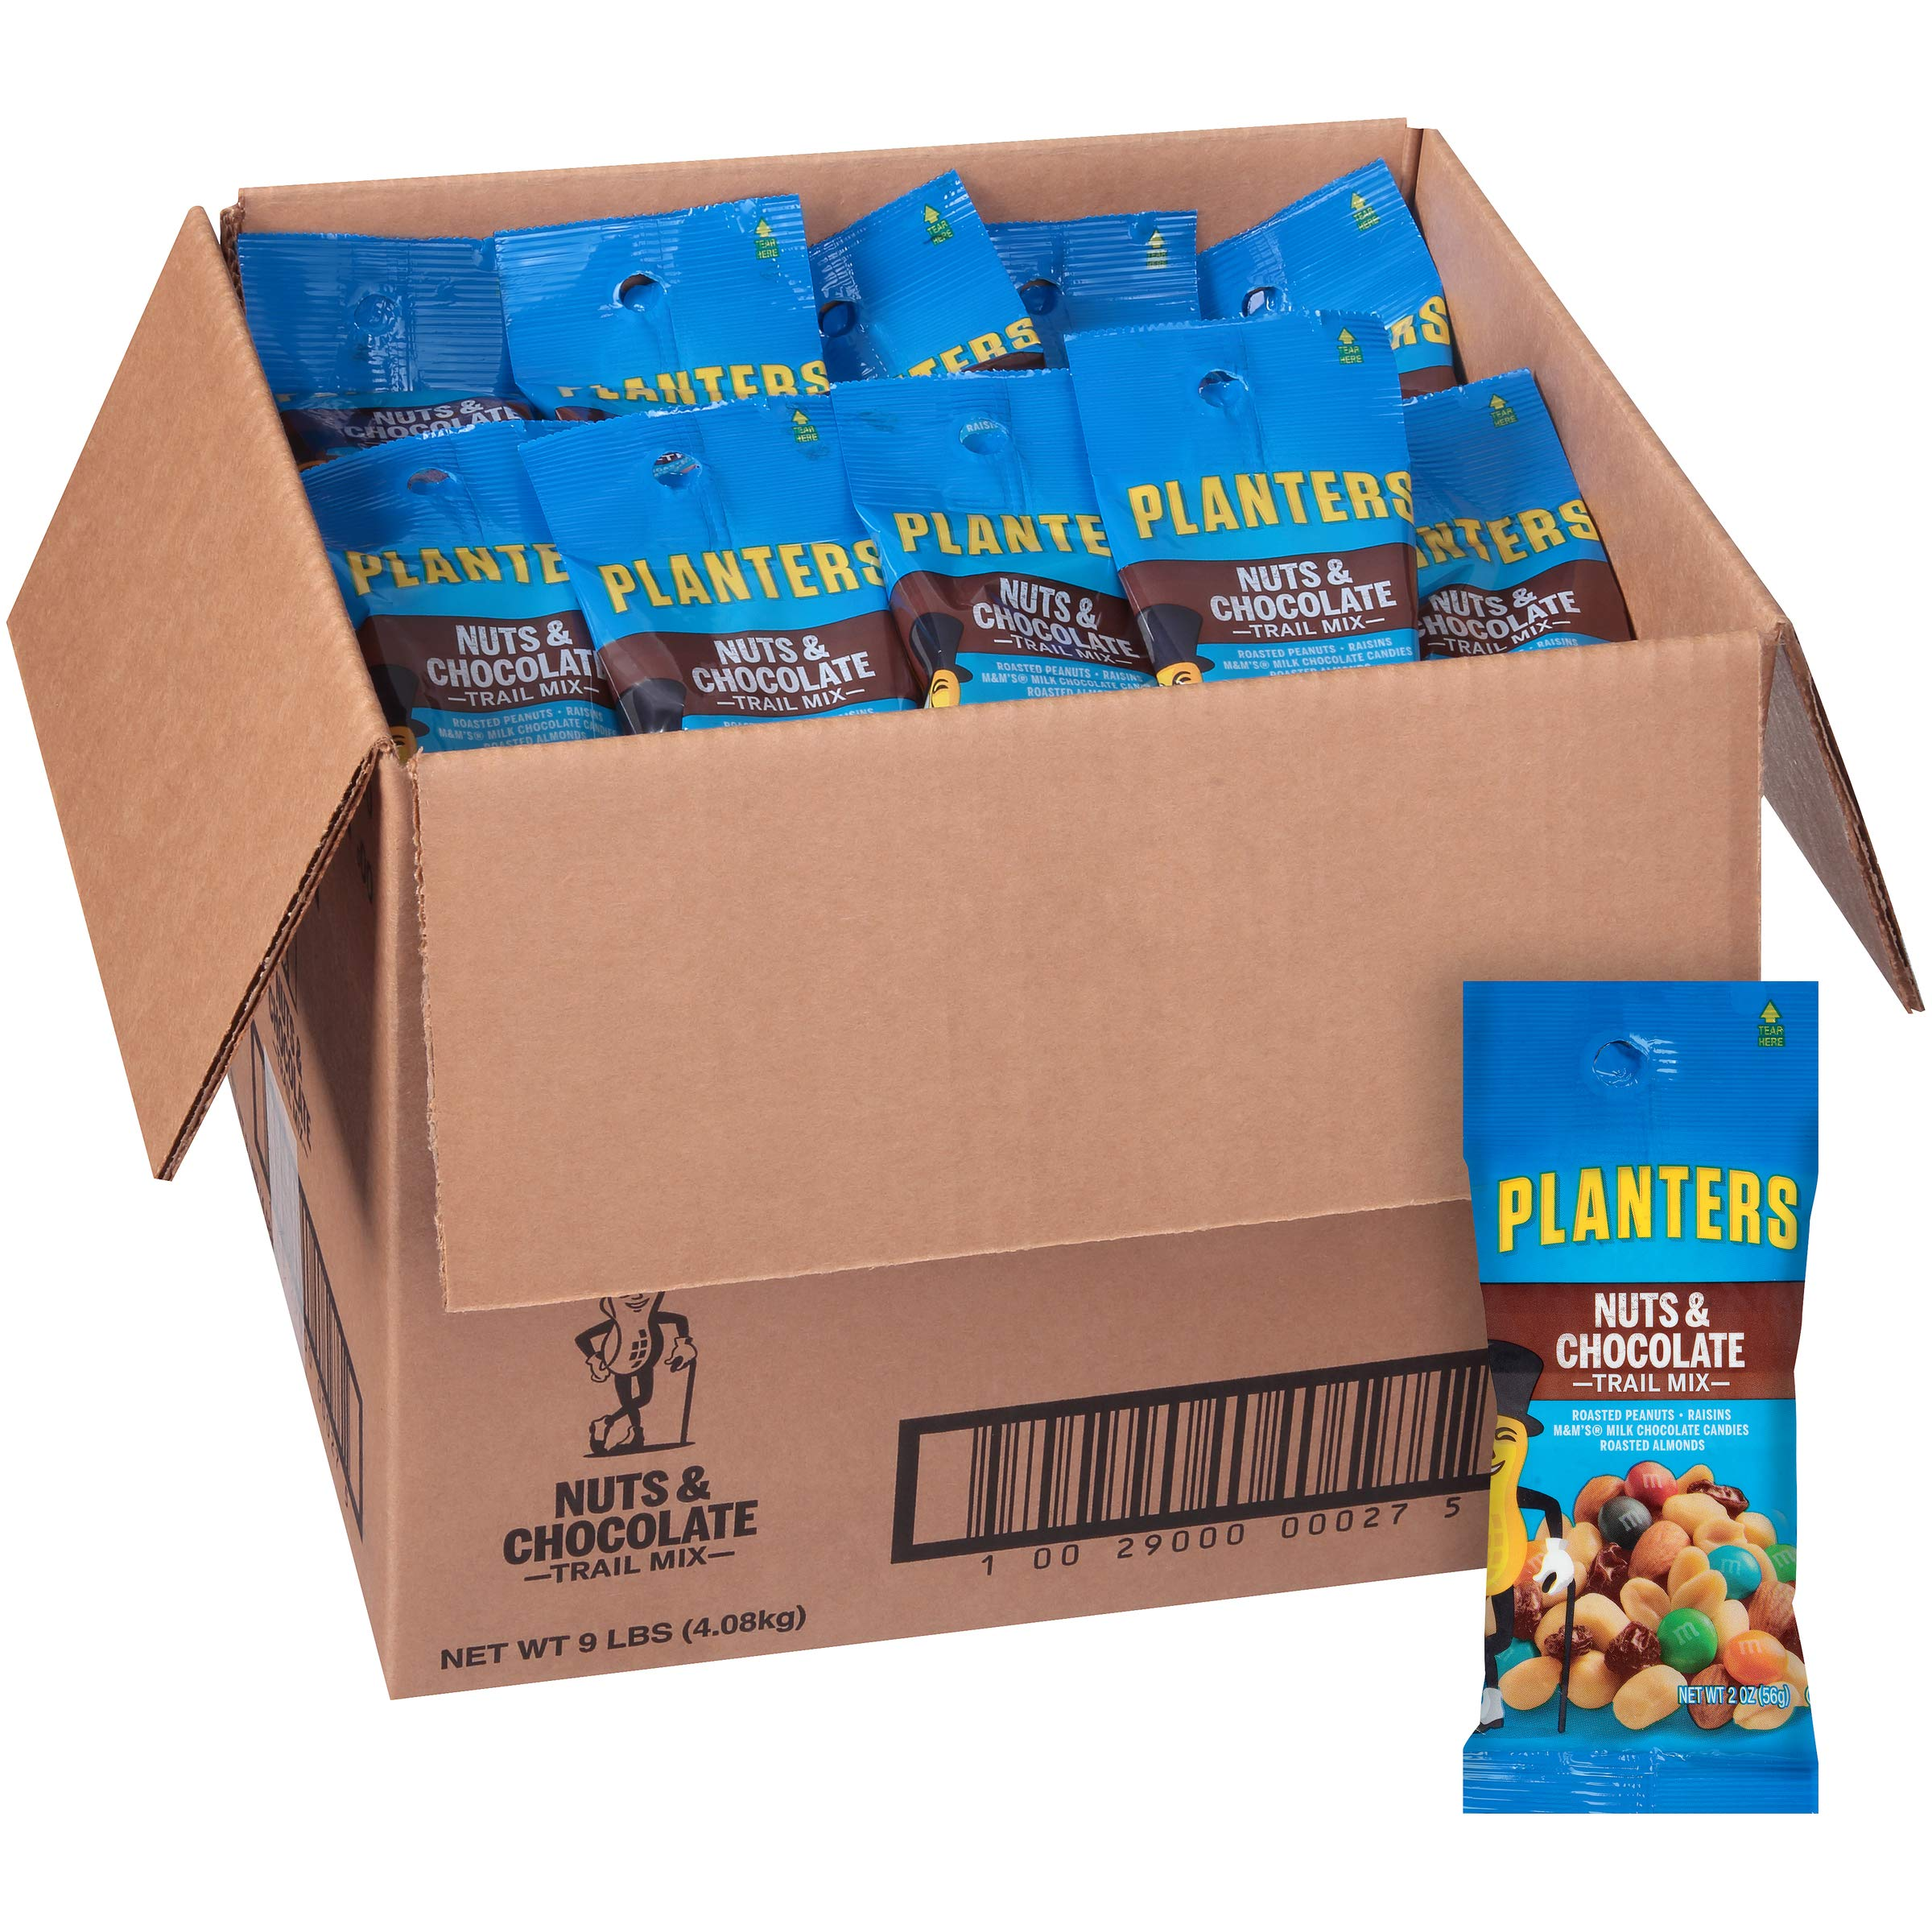 Planters Nuts & Chocolate M&M's Trail Mix, 2 oz Bag (Pack of 72) by Planters (Image #3)